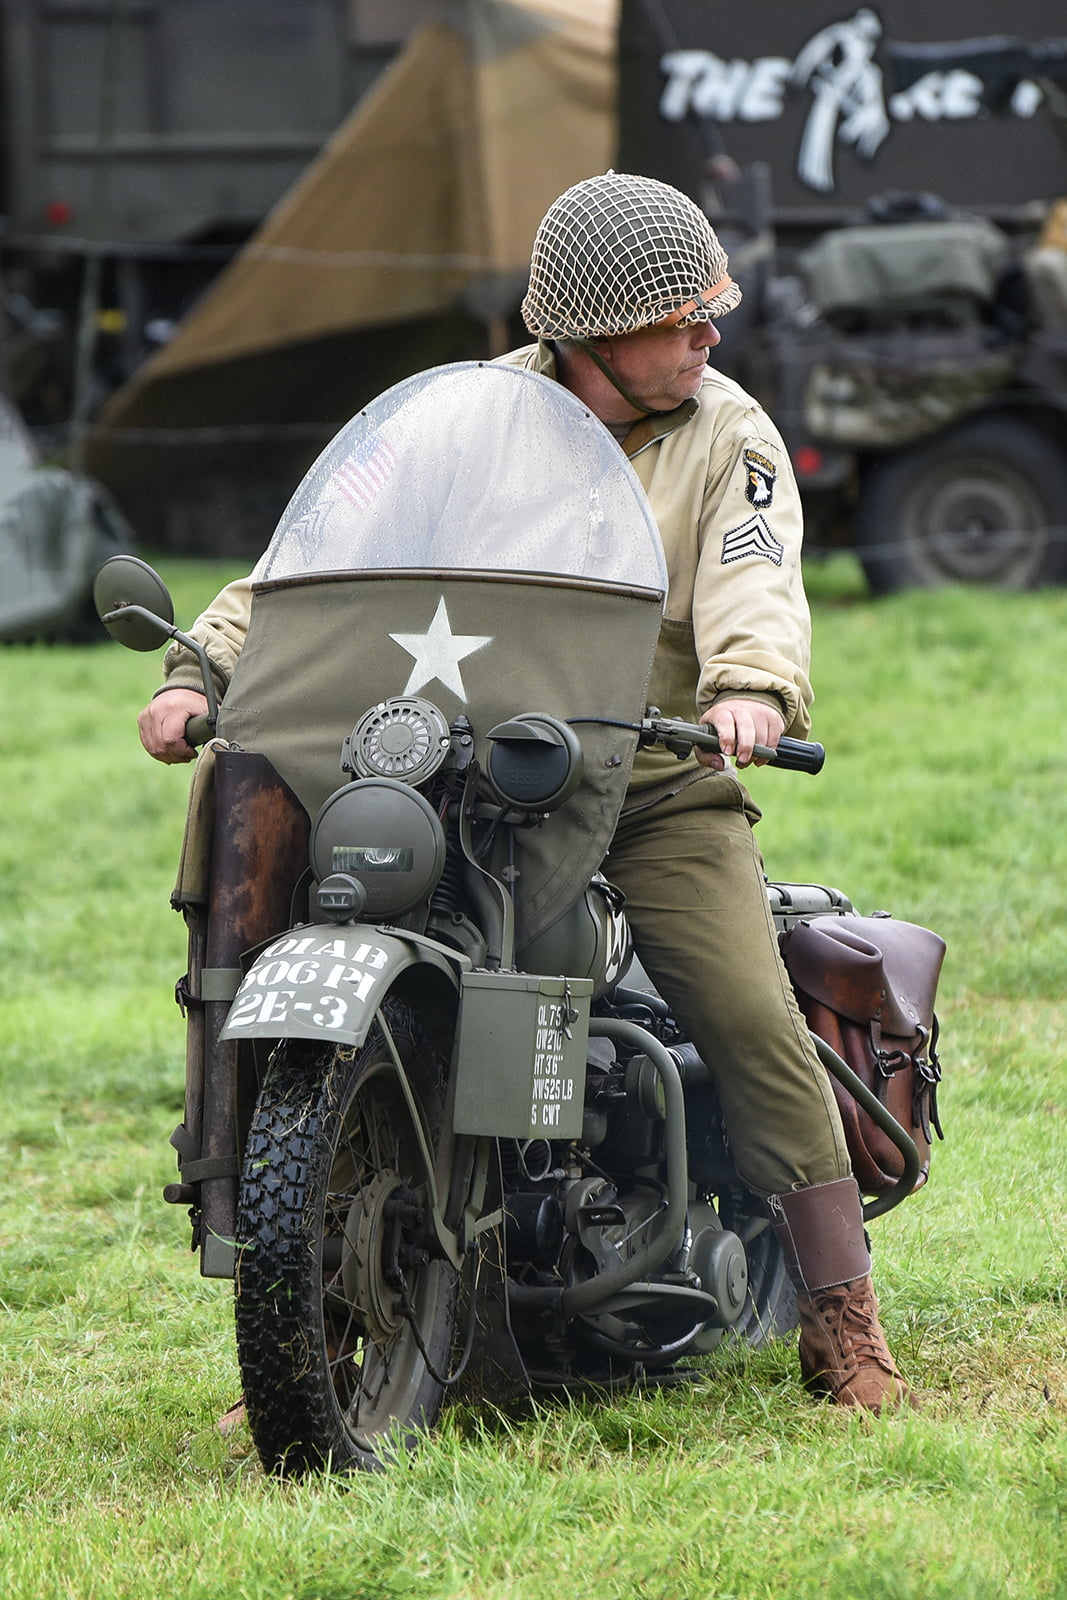 Re-enactor at Capel Military Show